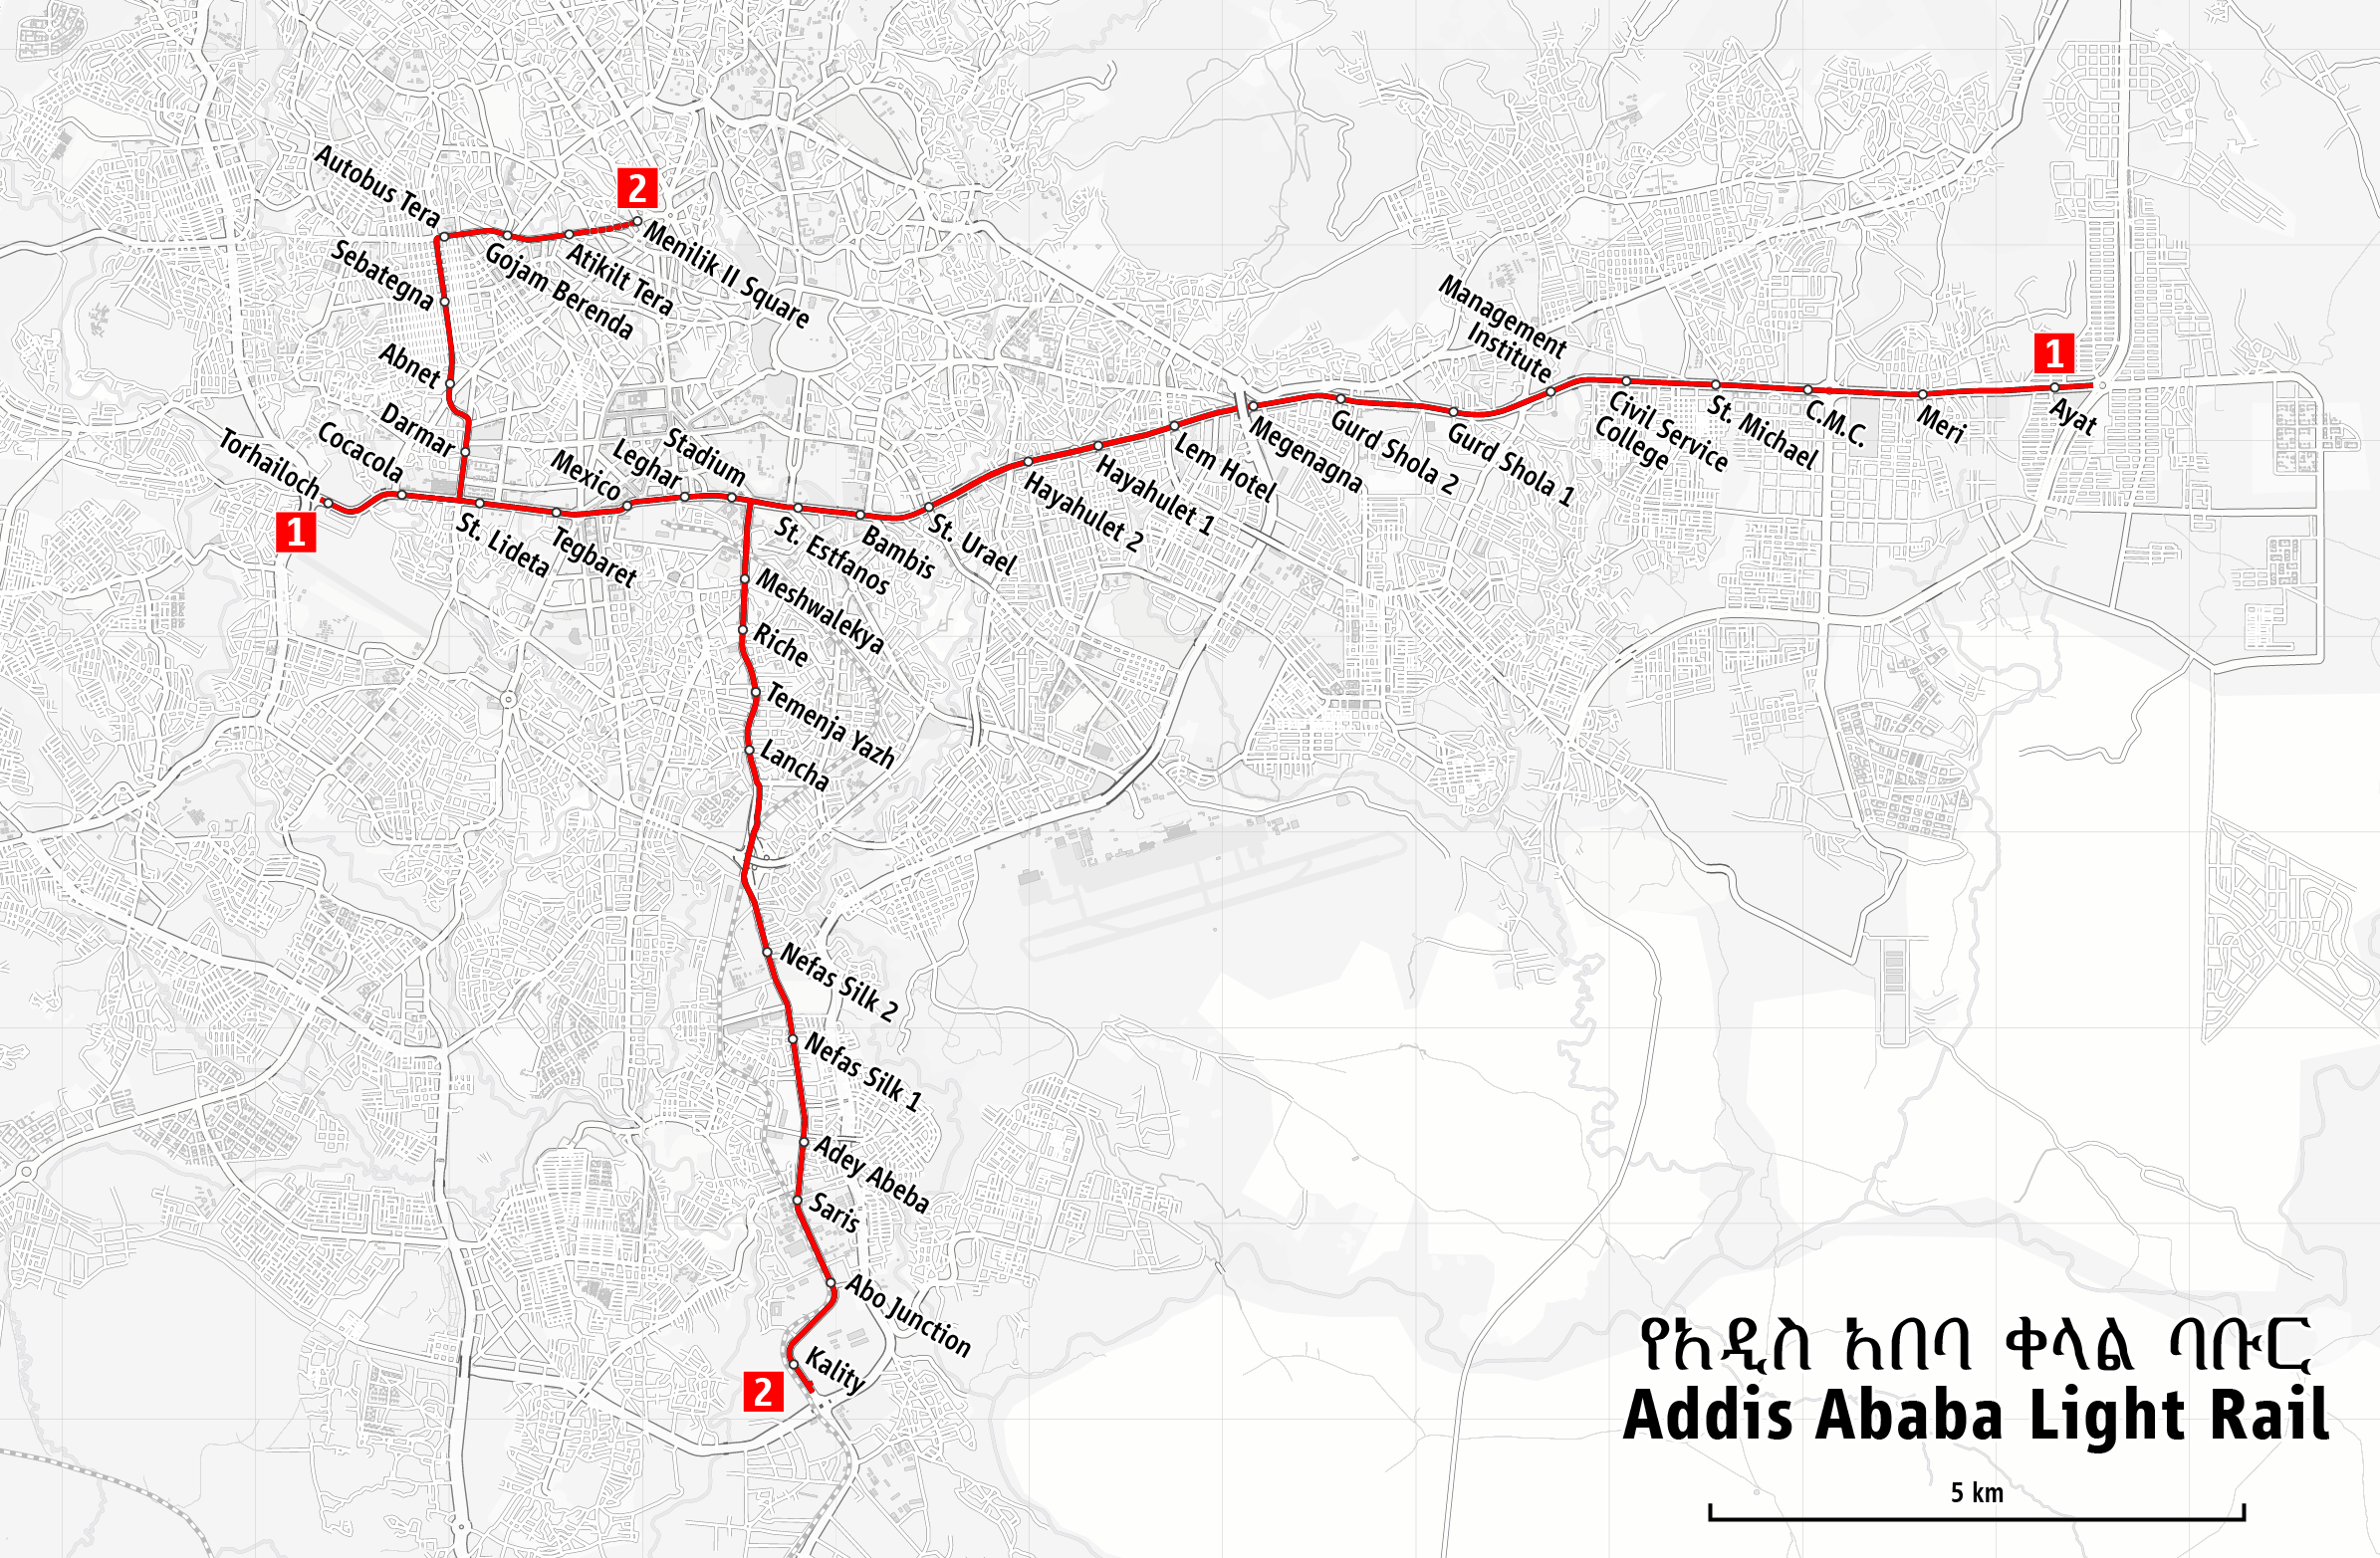 File:Map of the Addis Ababa Light Rail.png - Wikimedia Commons